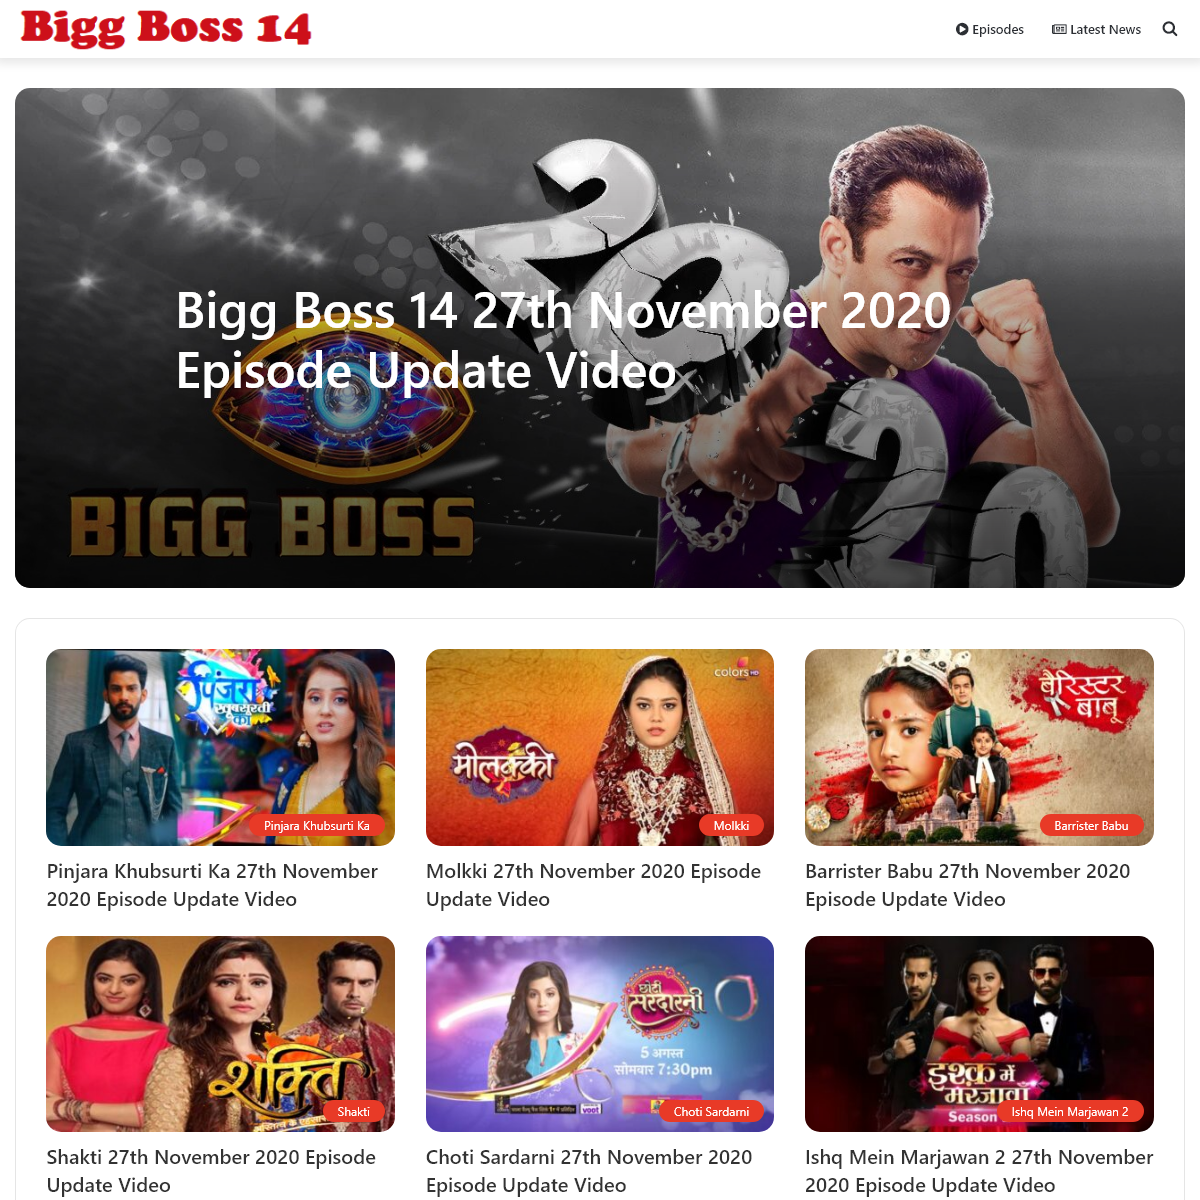 Watch Bigg Boss 14 All Episodes Online In High Quality